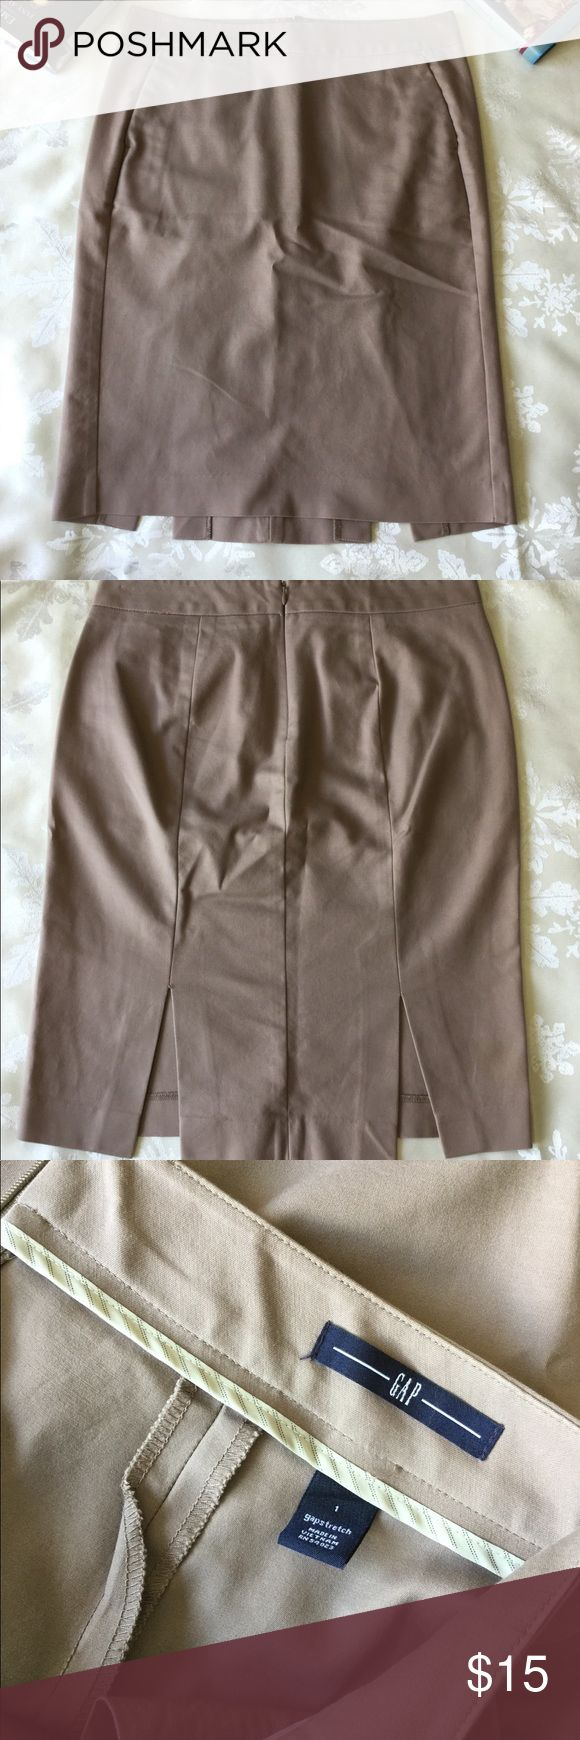 Gap stretch tan pencil skirt size 1 Gap tan pencil skirt with pockets. Zipper up back, size 1 stretch, excellent condition. GAP Skirts Pencil